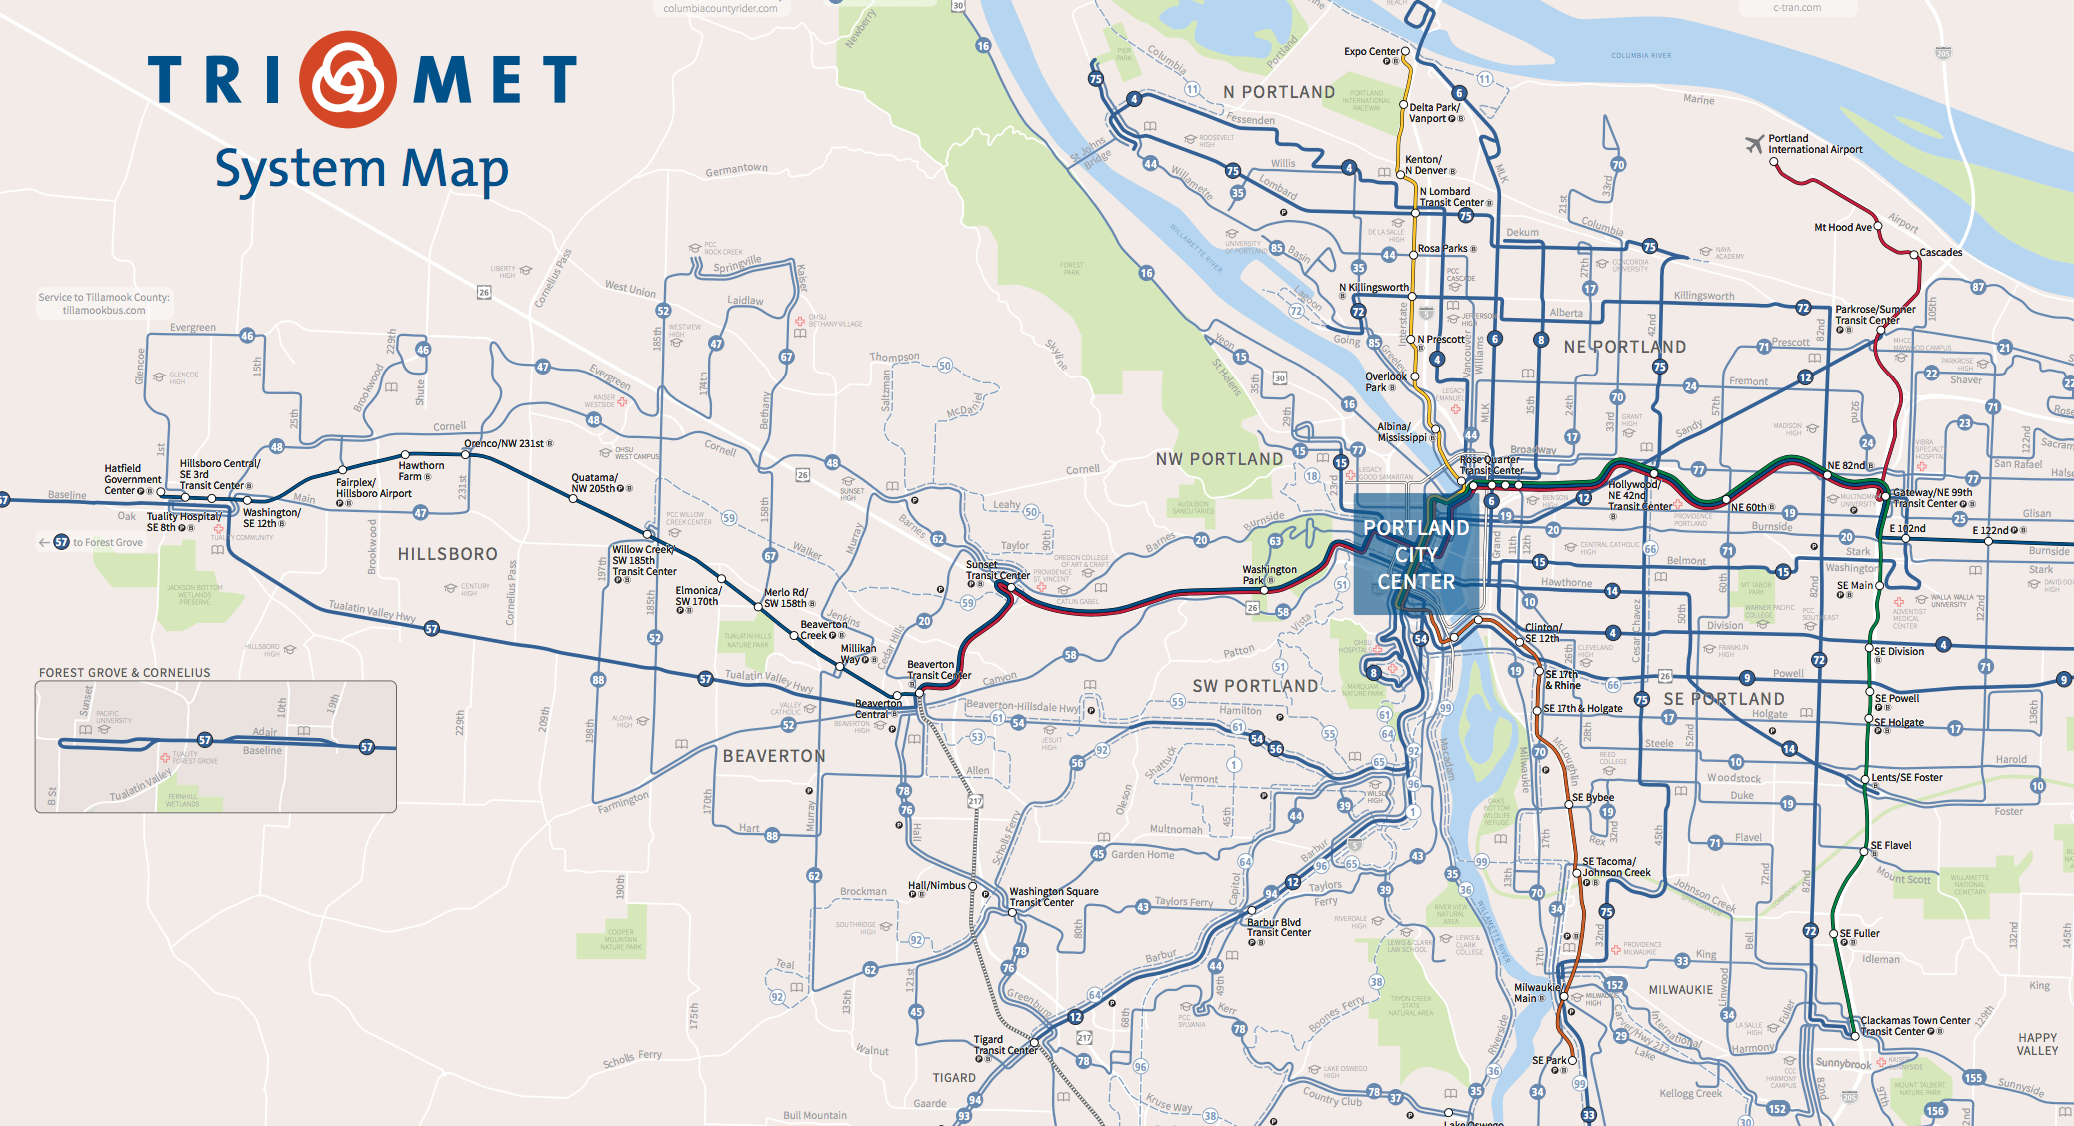 How to Design a Better Bus Transit Map - News | Planetizen Tri Met Map on unitrans map, target map, ripta map, comcast map, transit map, bc ferries map, reed college map, nctd map, kaiser permanente map, portland streetcar map, miami train station map, transperth map, fbi map, macy's map, modot map, microsoft map, metrobus map, genentech map, translink map, skytrain map,